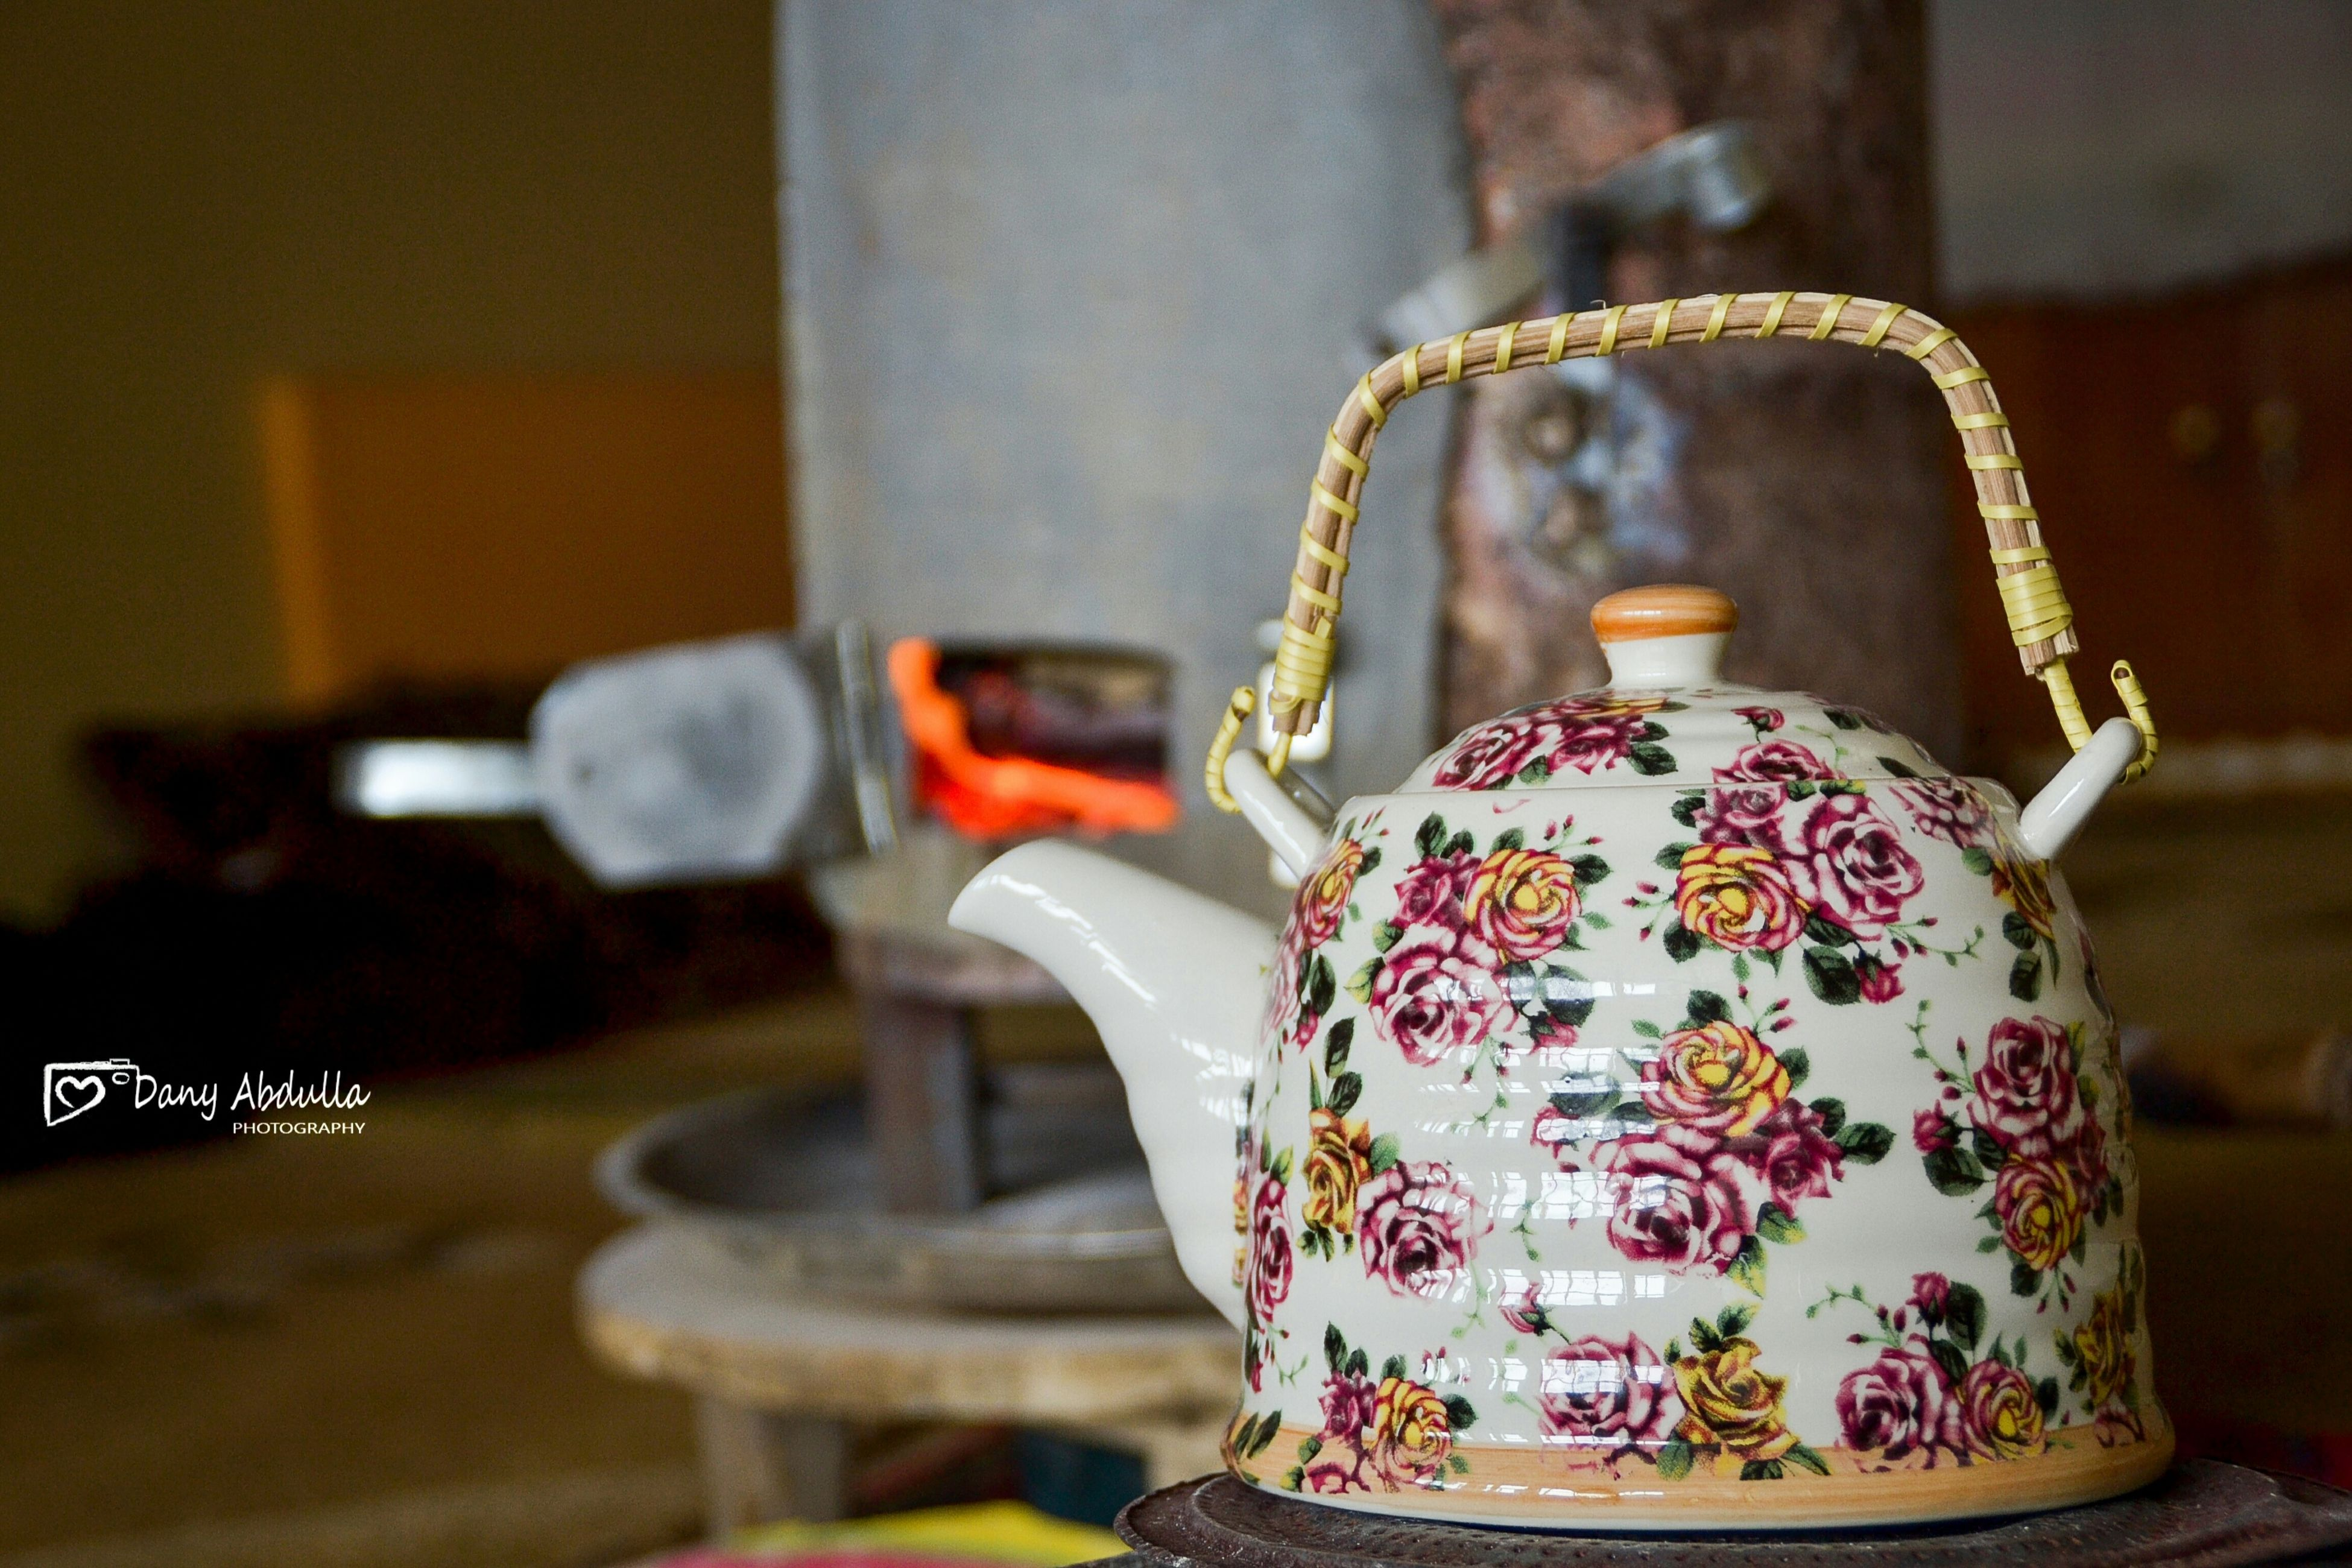 indoors, no people, teapot, close-up, day